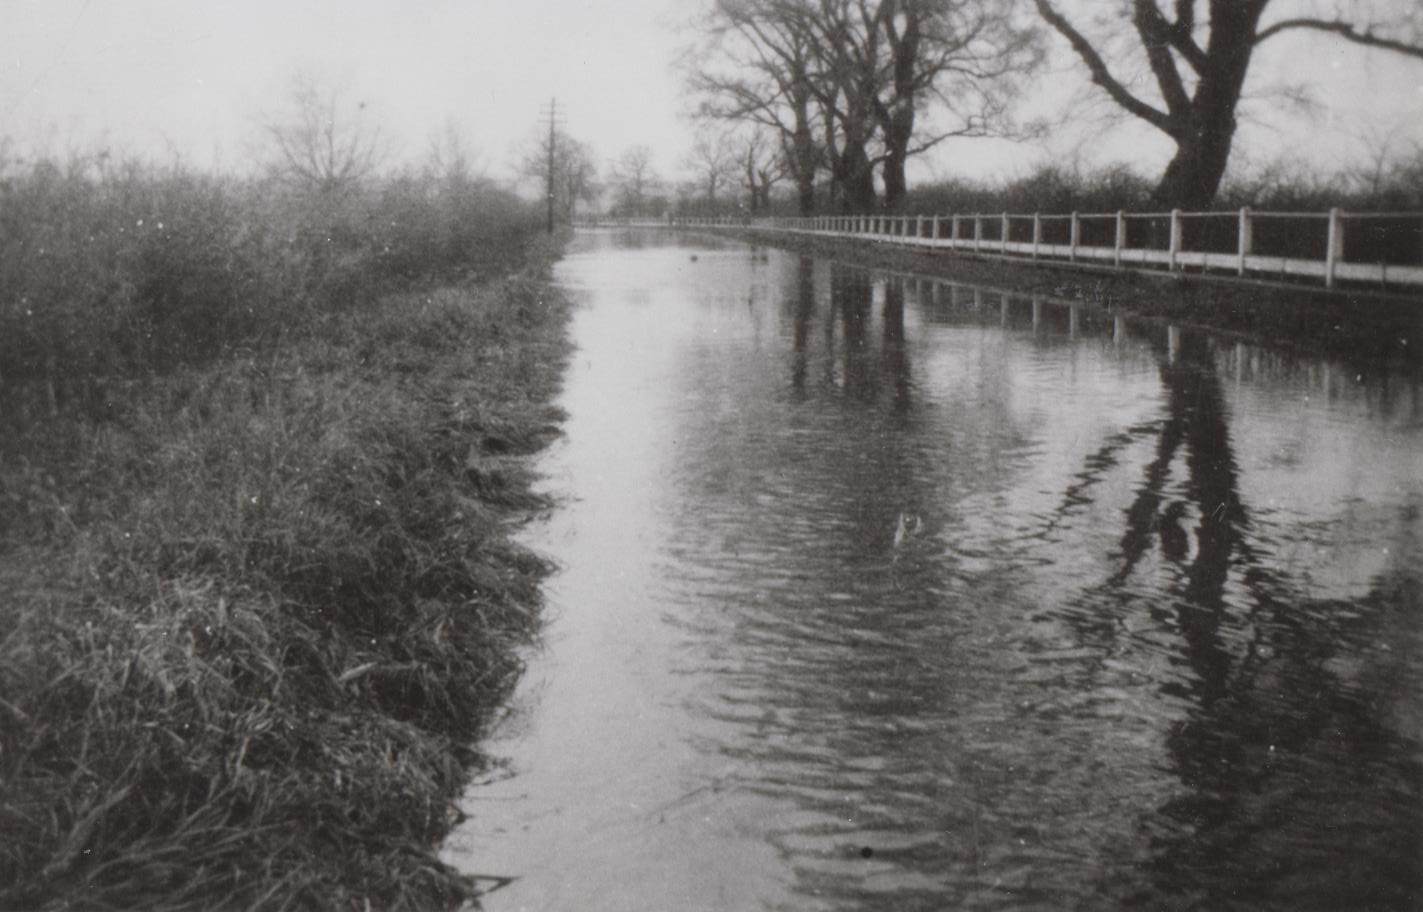 h356_more_floods_zouch_road-001.jpg